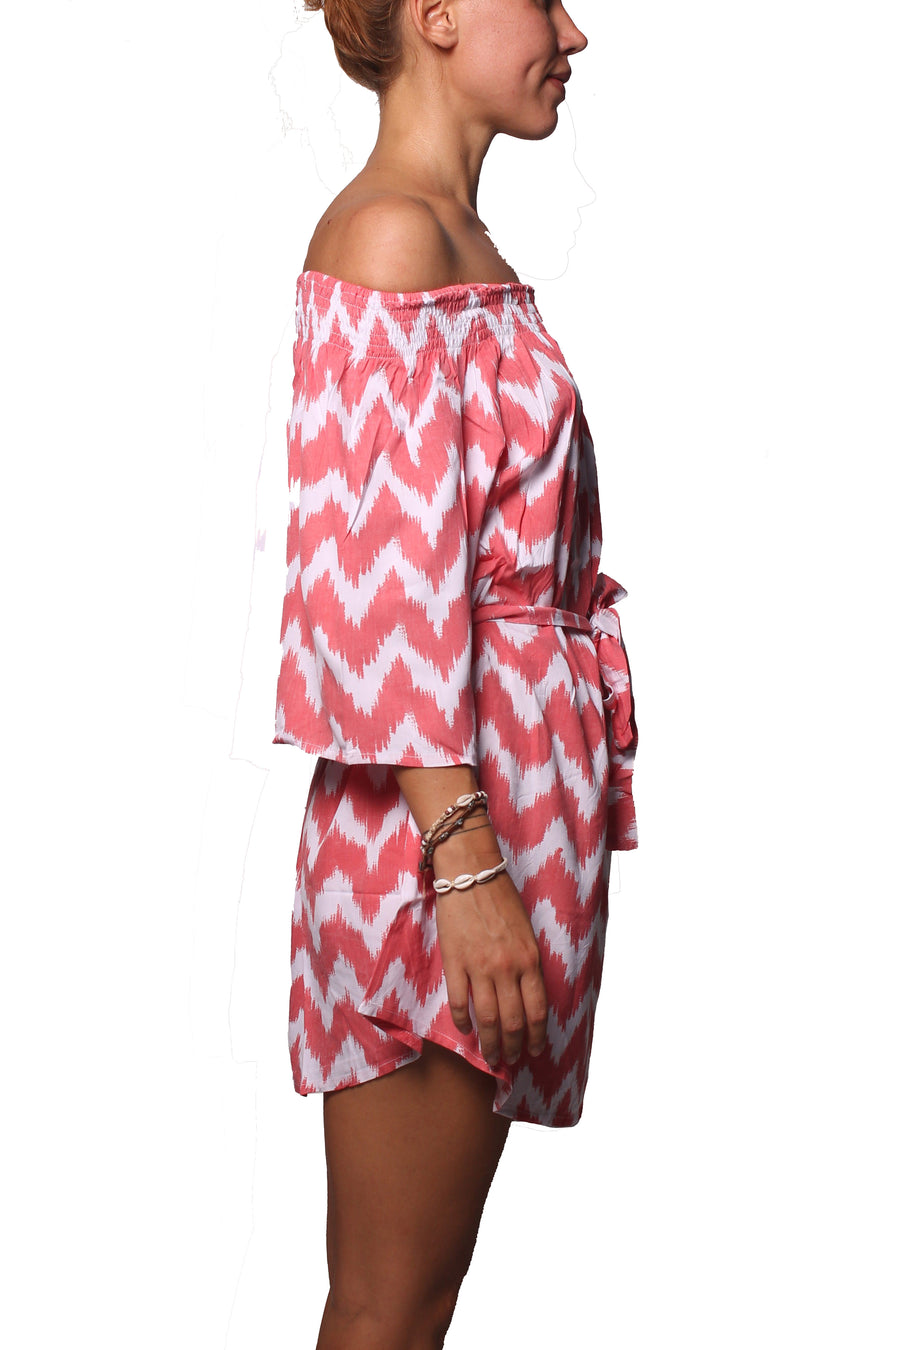 Off Shoulder Dress Zigzag Pink